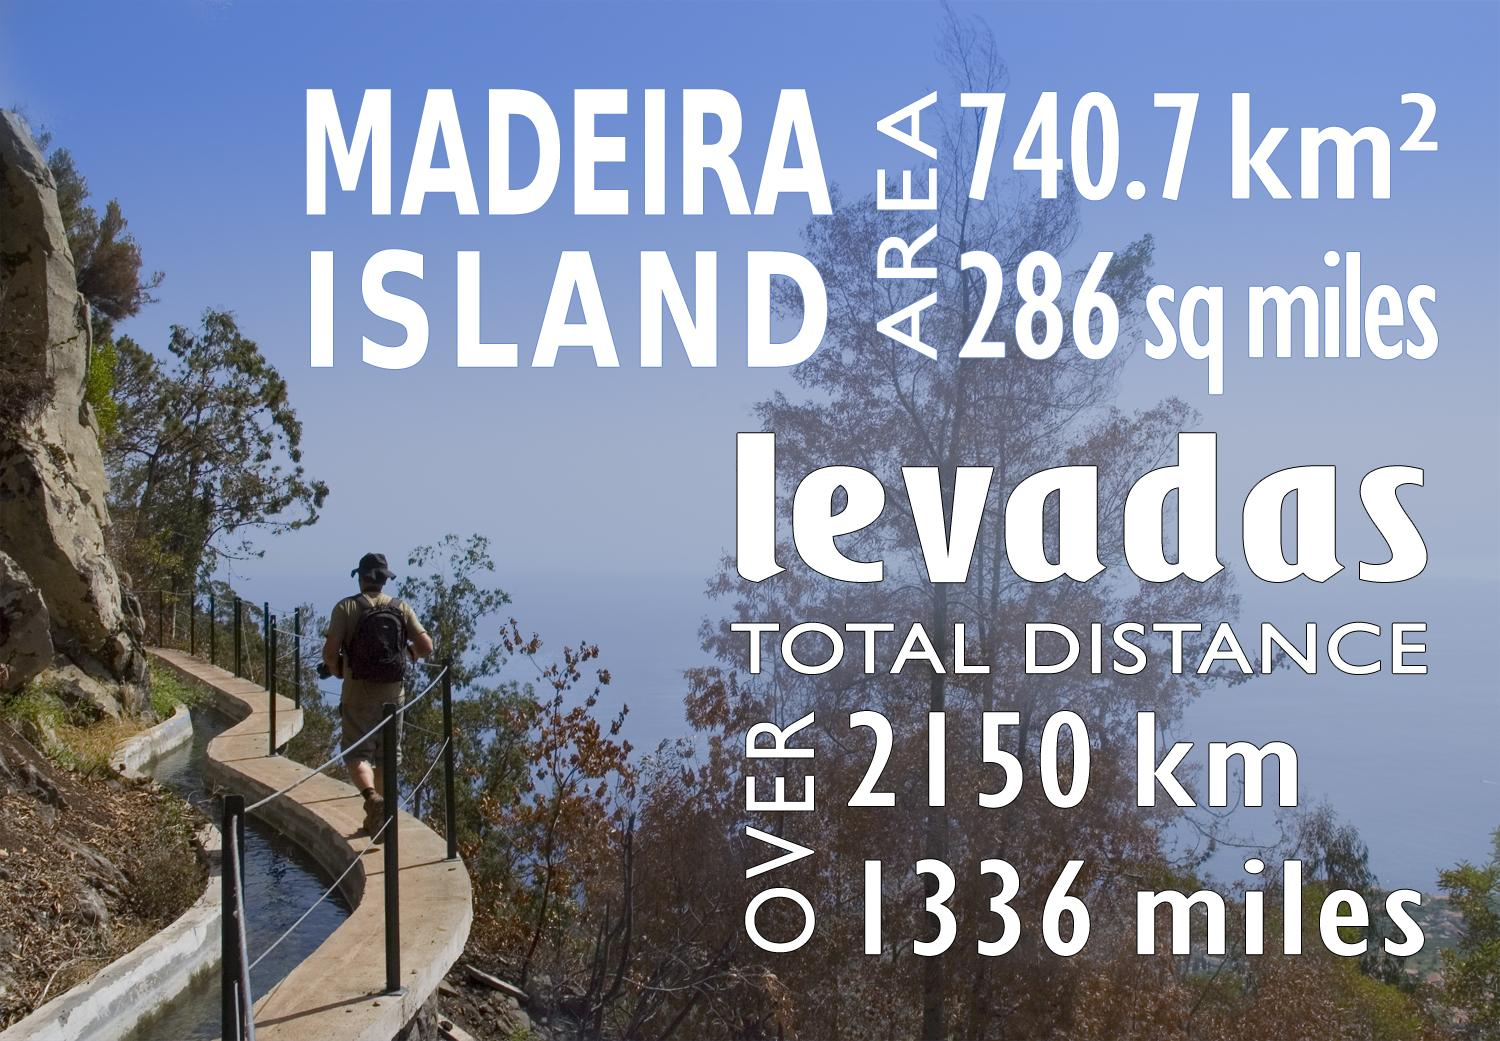 .@We_Japan yes. The most popular trails are our Levadas http://t.co/zIY4T6kk6b